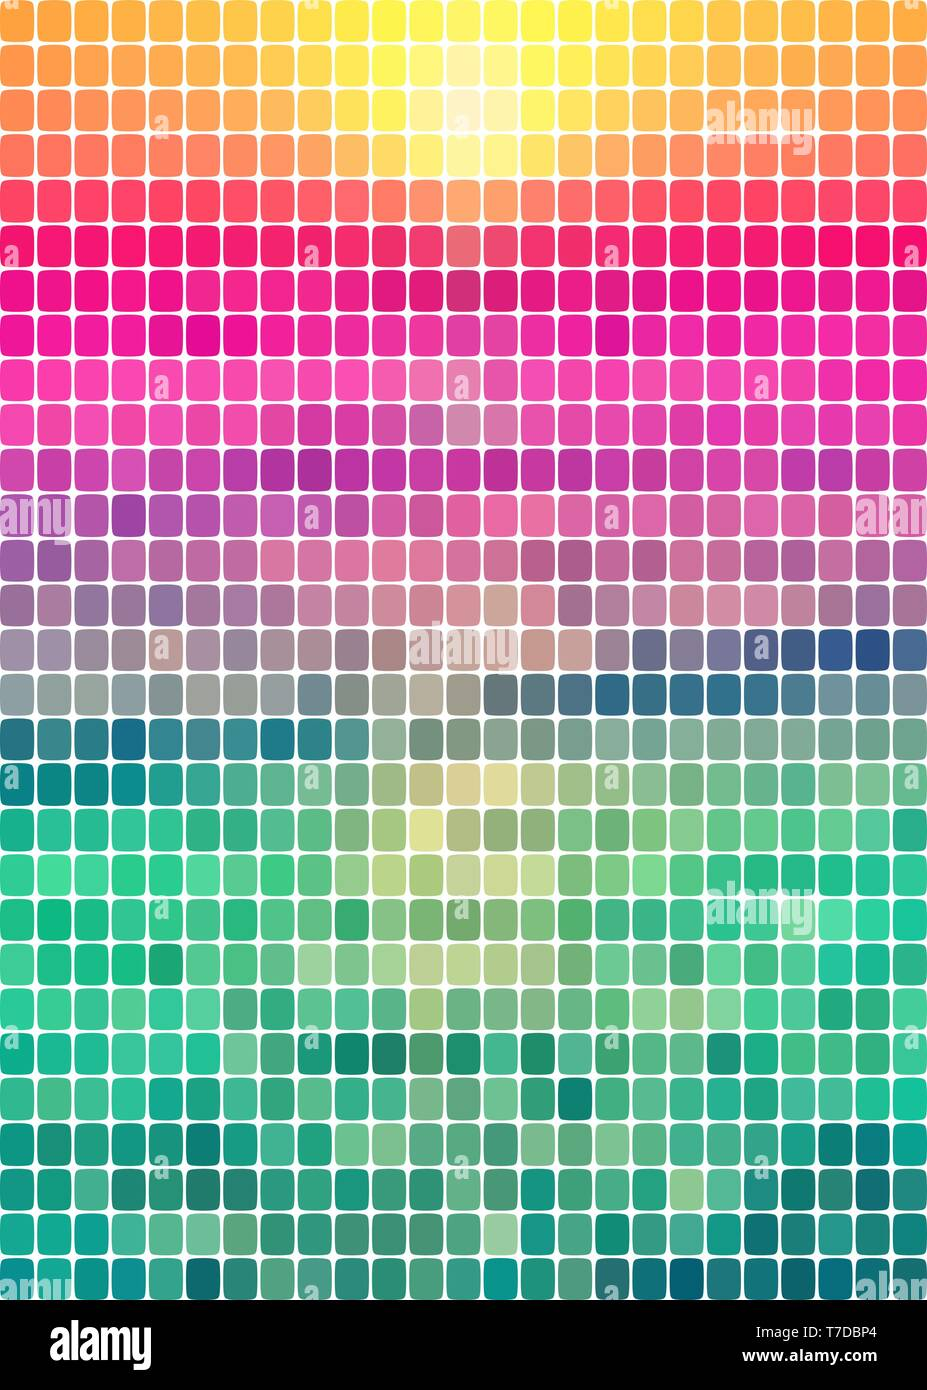 background of multi-colored rectangles - Stock Vector